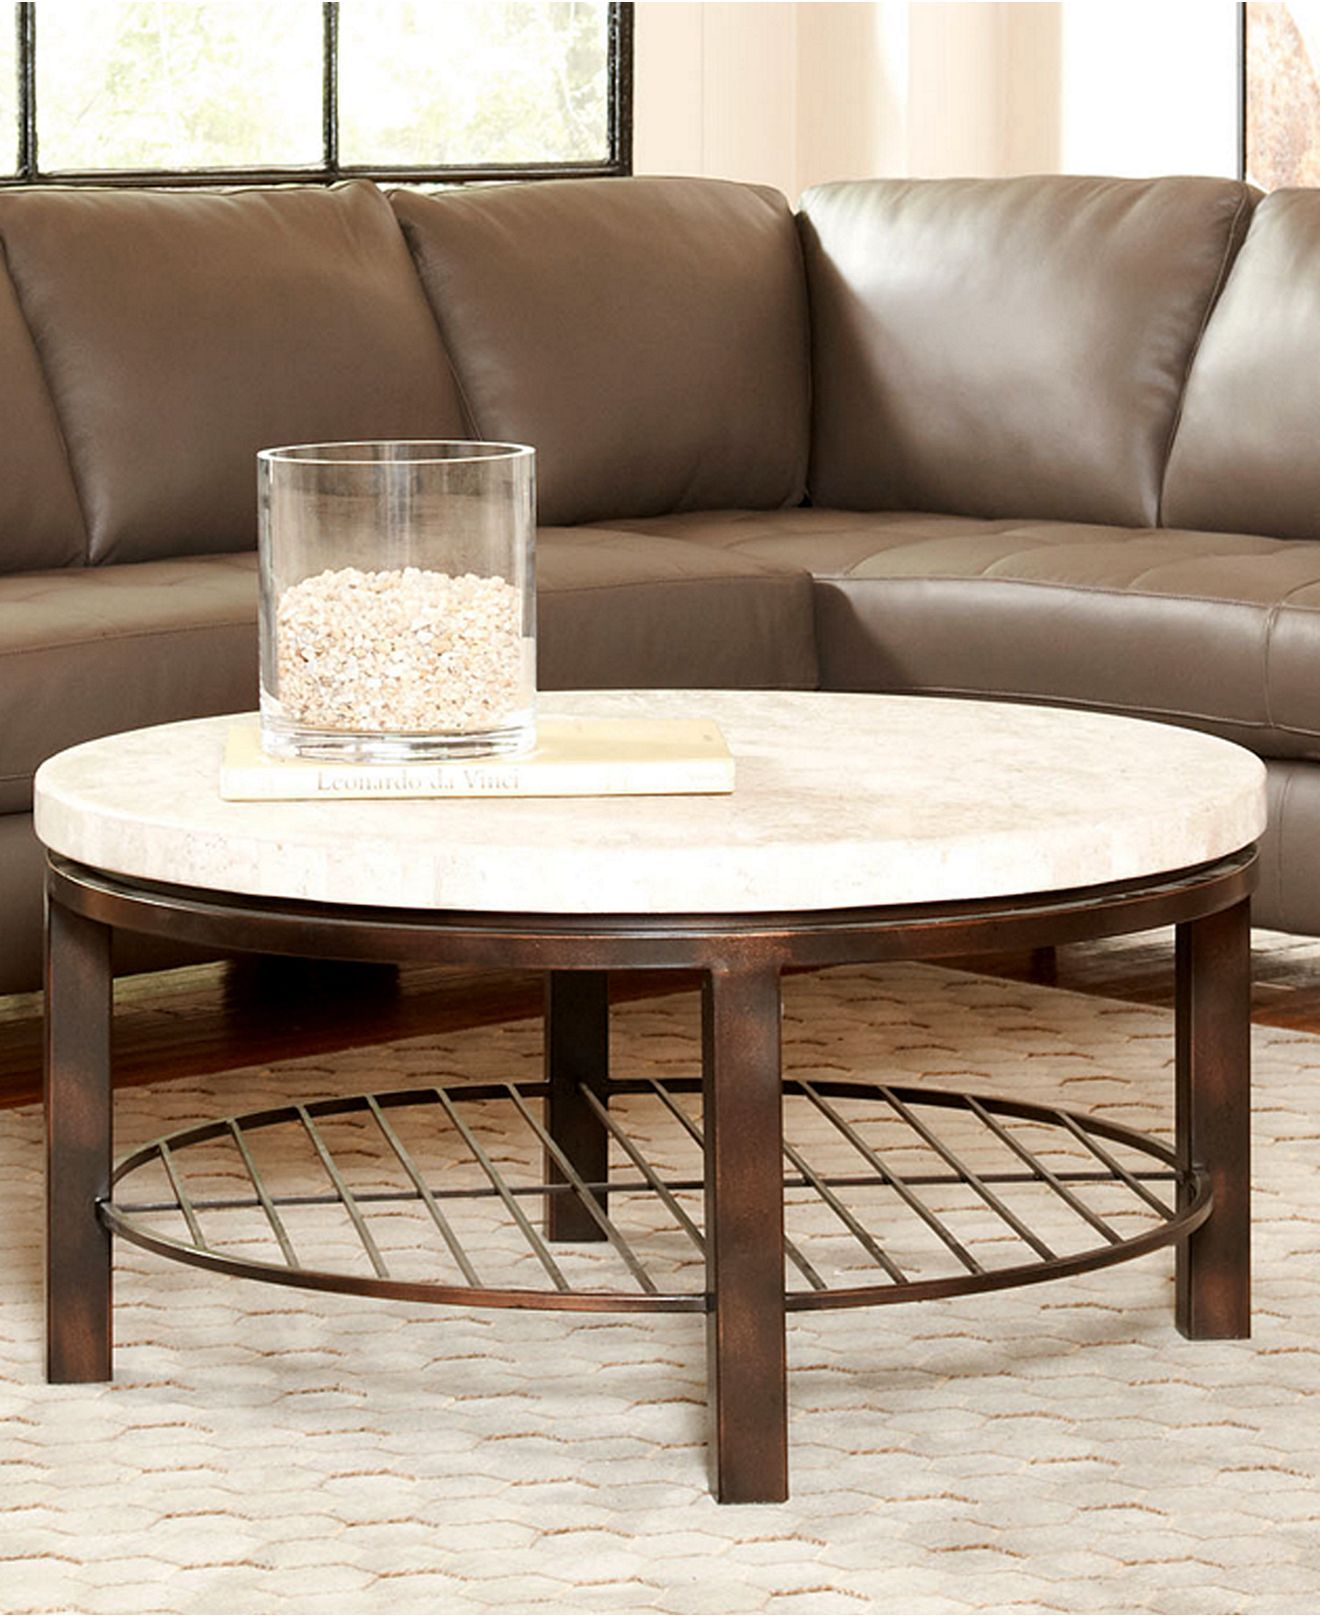 Tempo travertine table collection round table furniture tempo travertine table collection round geotapseo Gallery